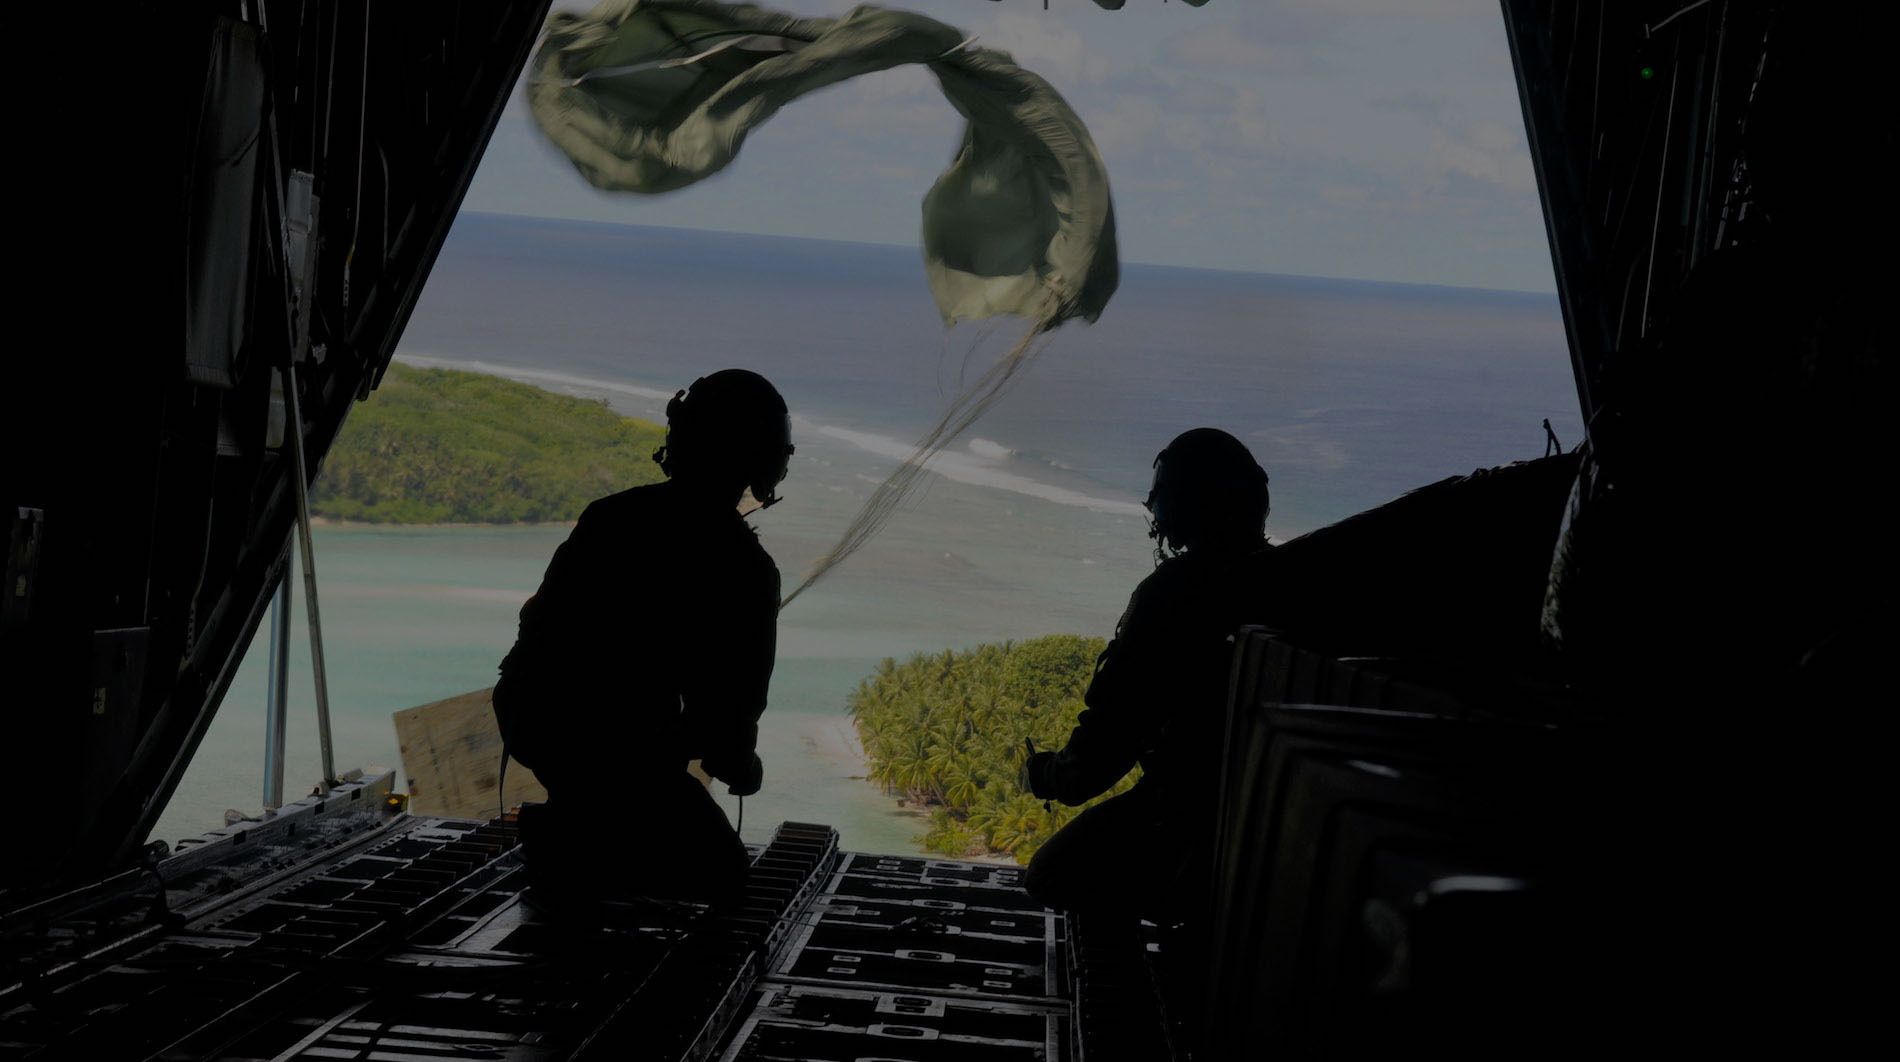 Airmen from the 36th Airlift Squadron, Yokota Air Base, Japan, watch as the parachute deploys and a box of humanitarian goods travels to the Yap Islands below during Operation Christmas Drop, Dec. 14, 2010. Operation Christmas Drop is the Air Force's longest-running humanitarian which began in 1952. What started as a WB-50 aircrew returning to Guam on its final flight before Christmas has turned into the longest running humanitarian campaign in the history of the U.S. Air Force and the entire world. (U.S. Air Force photo/Senior Airman Nichelle Anderson)